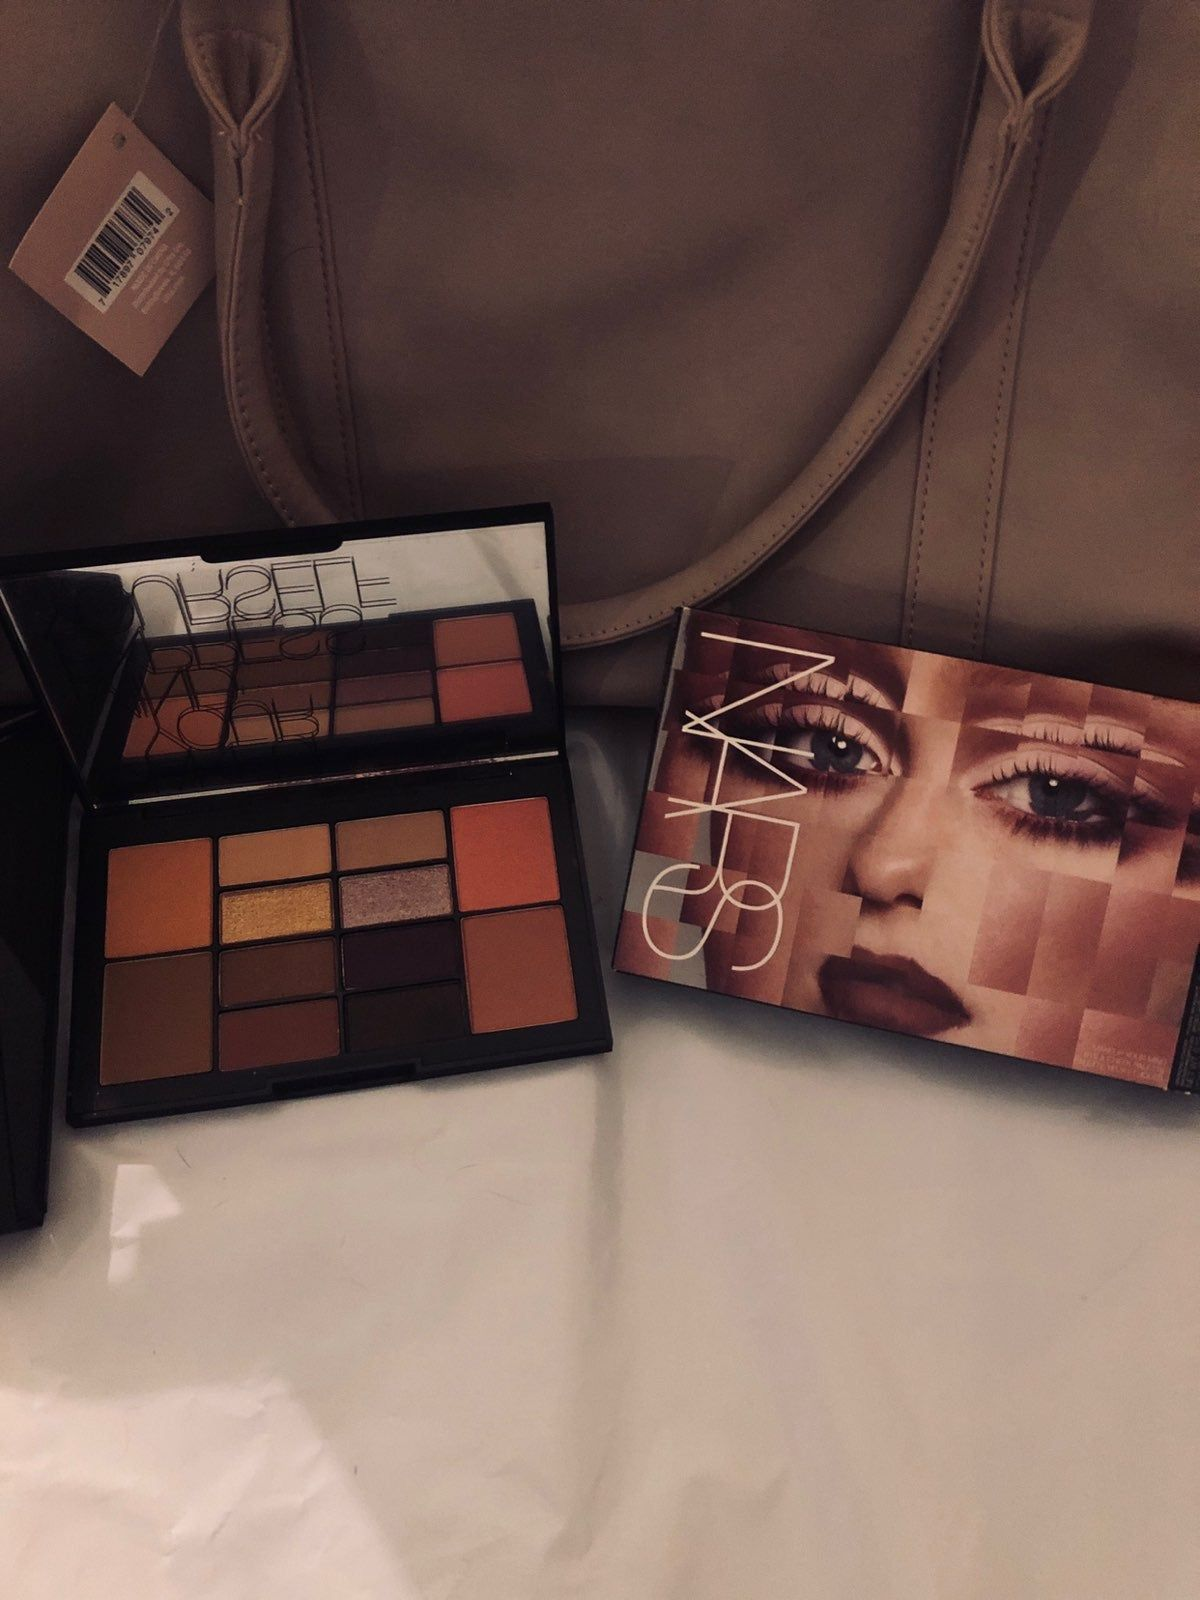 Newest one out and unused Nars makeup, Makeup cosmetics